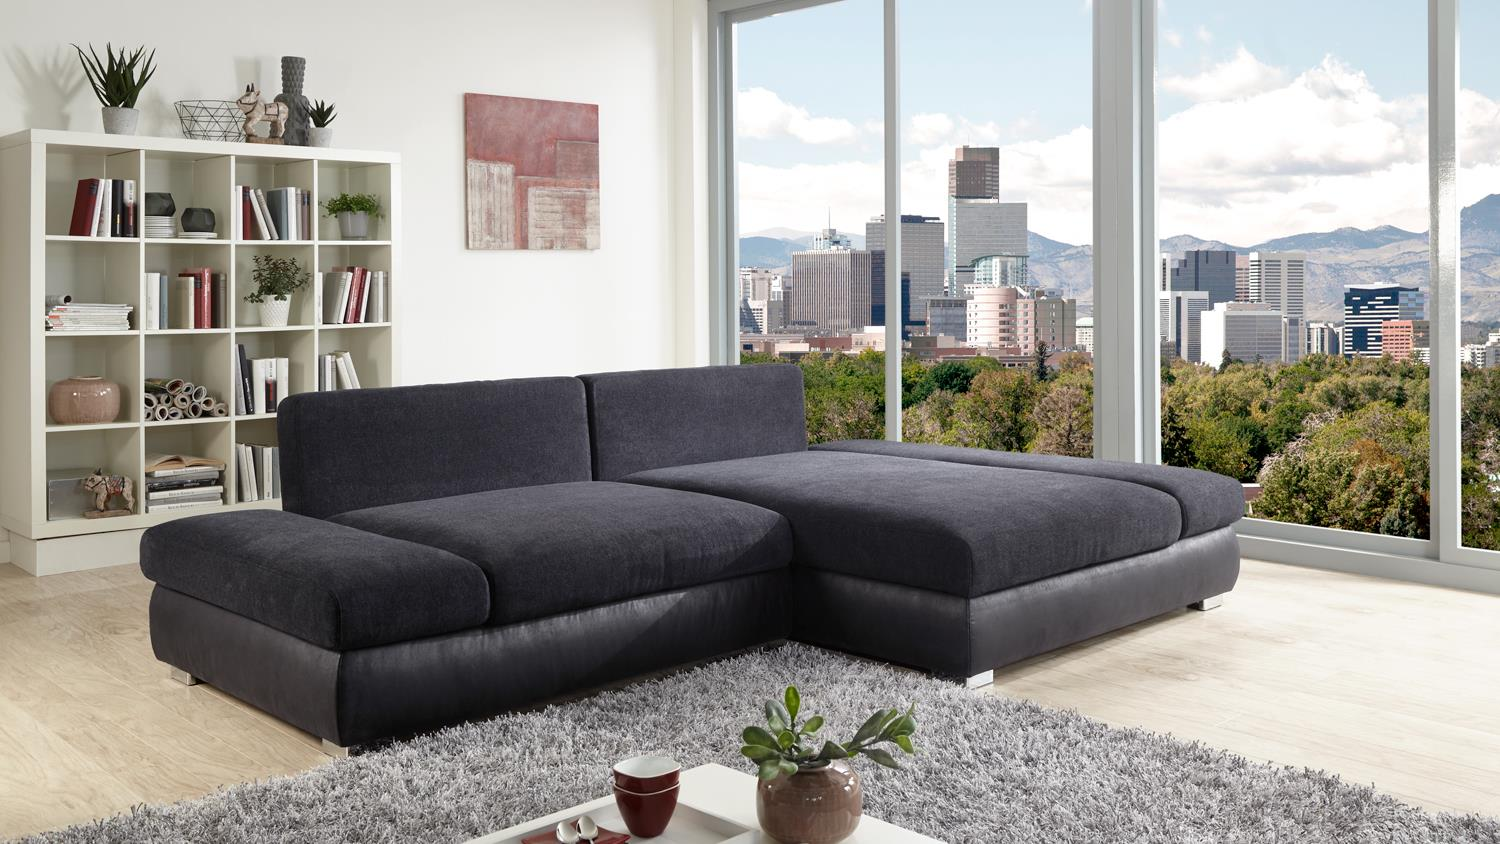 ecksofa bangkok stoff anthrazit und schwarz mit federkern. Black Bedroom Furniture Sets. Home Design Ideas